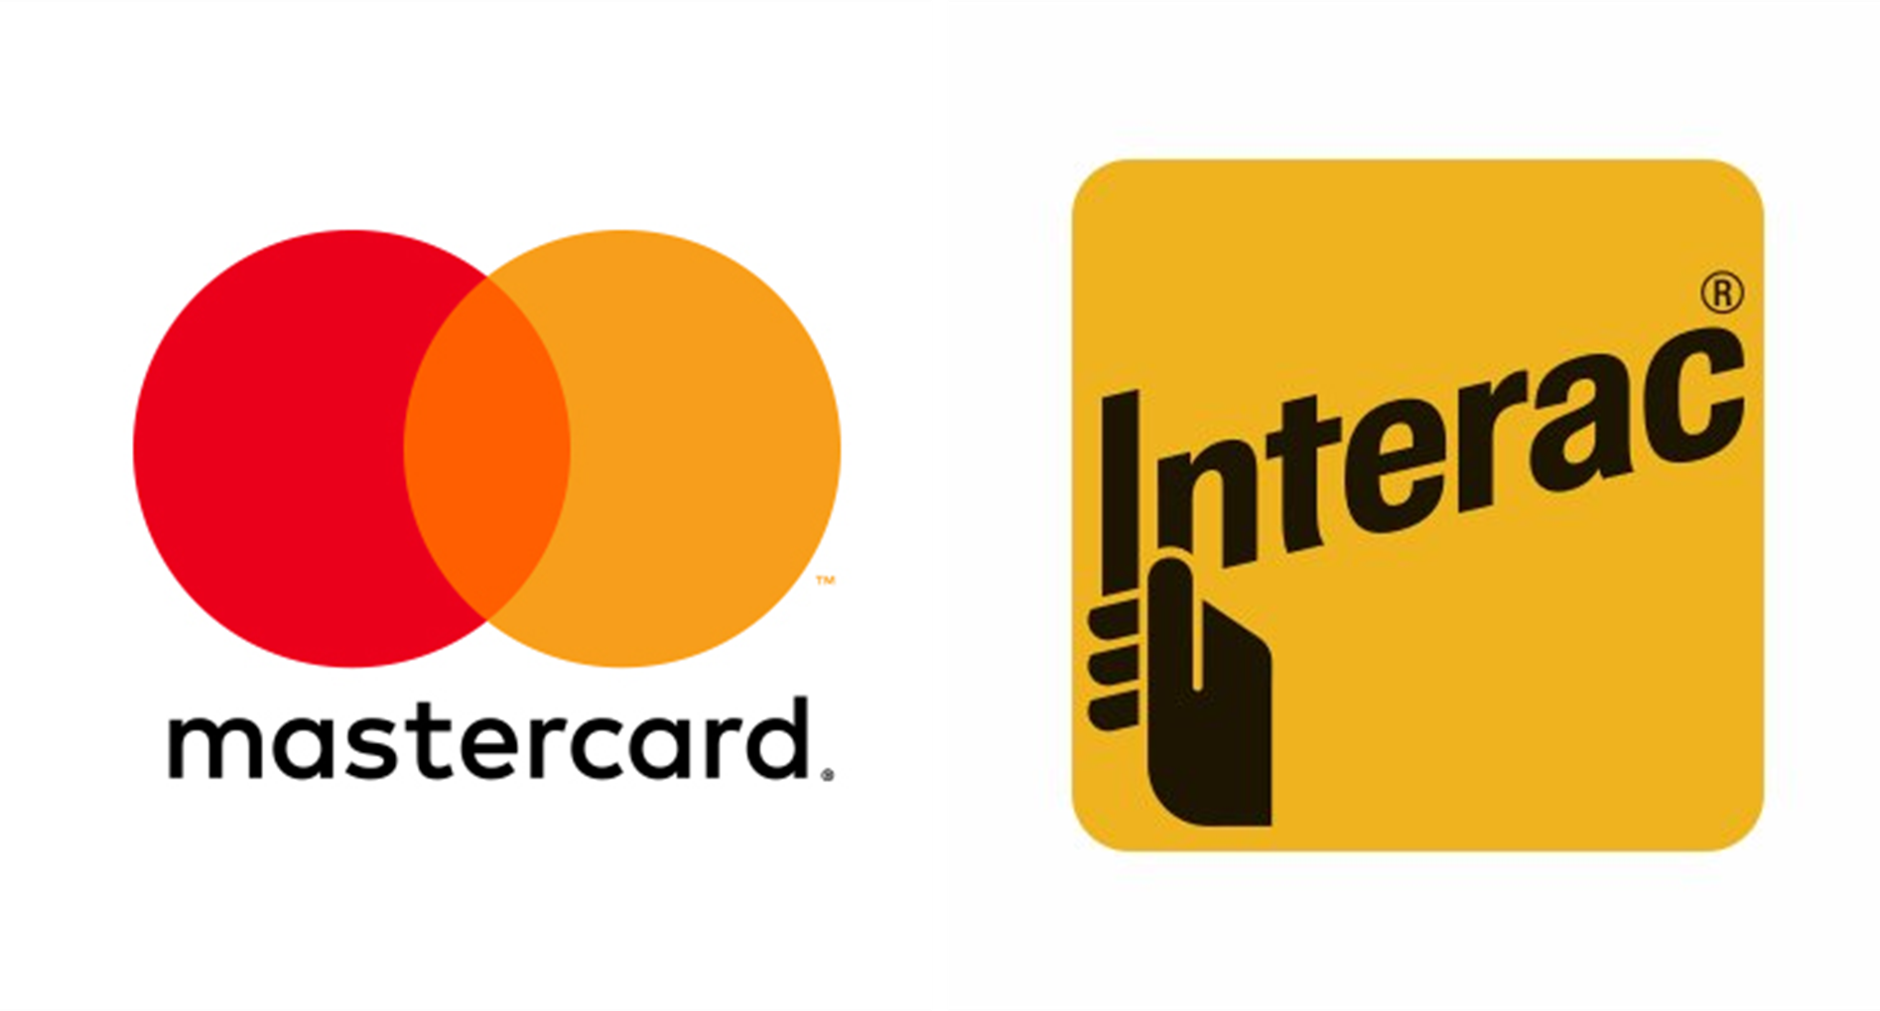 Mastercard and Interac collaborate to give Canadians a fast, simple and secure way to send money globally